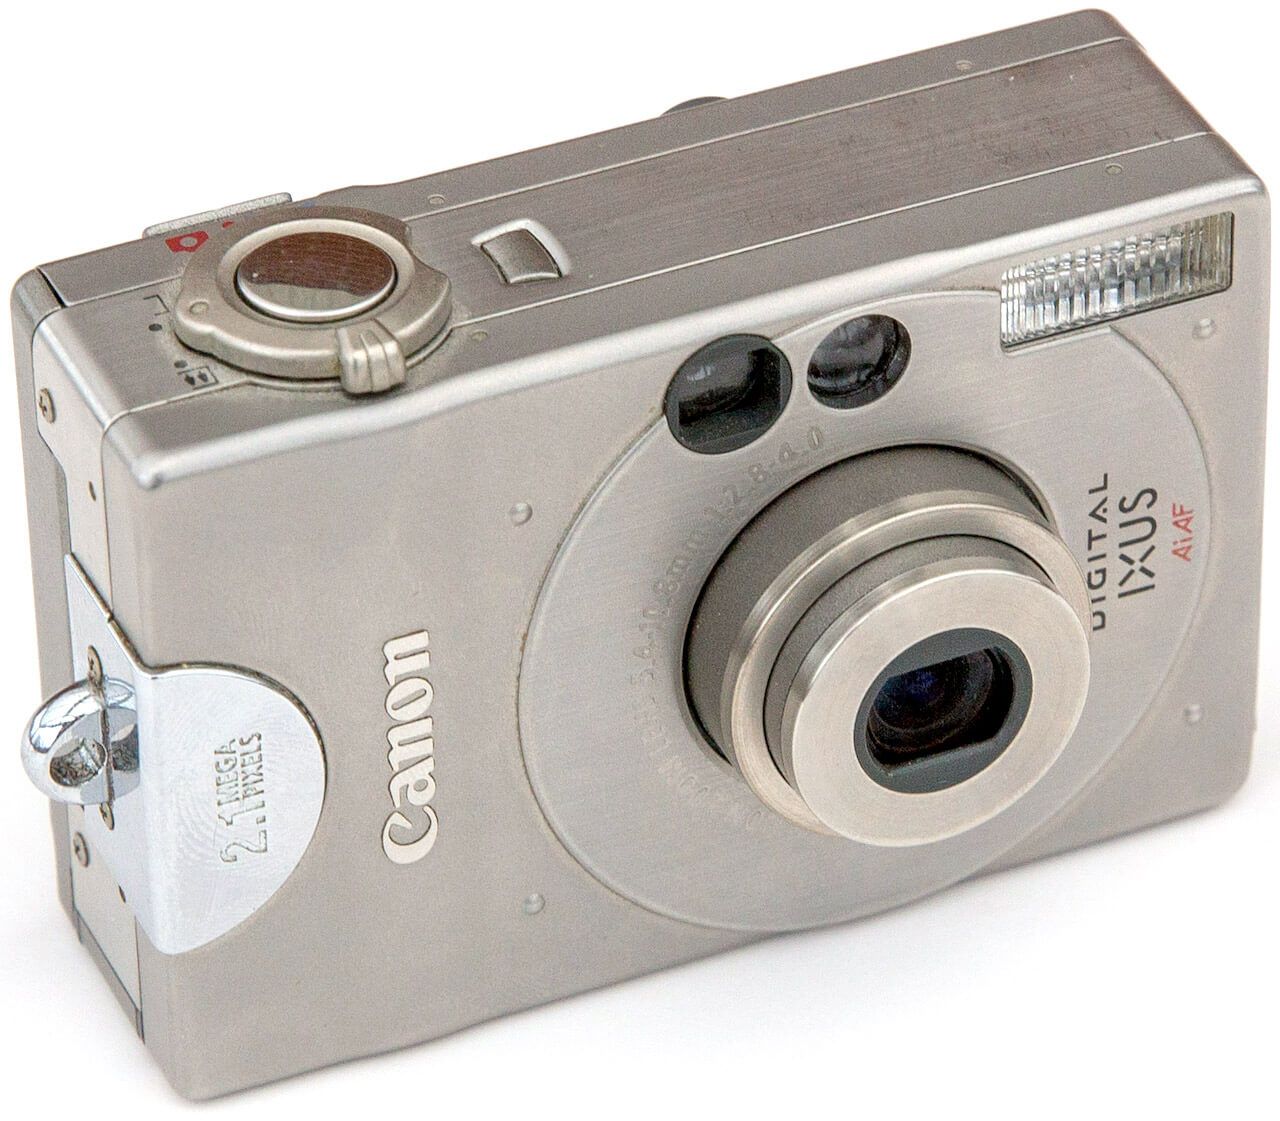 My first digital camera, the Canon Digital Ixus. (184-162)